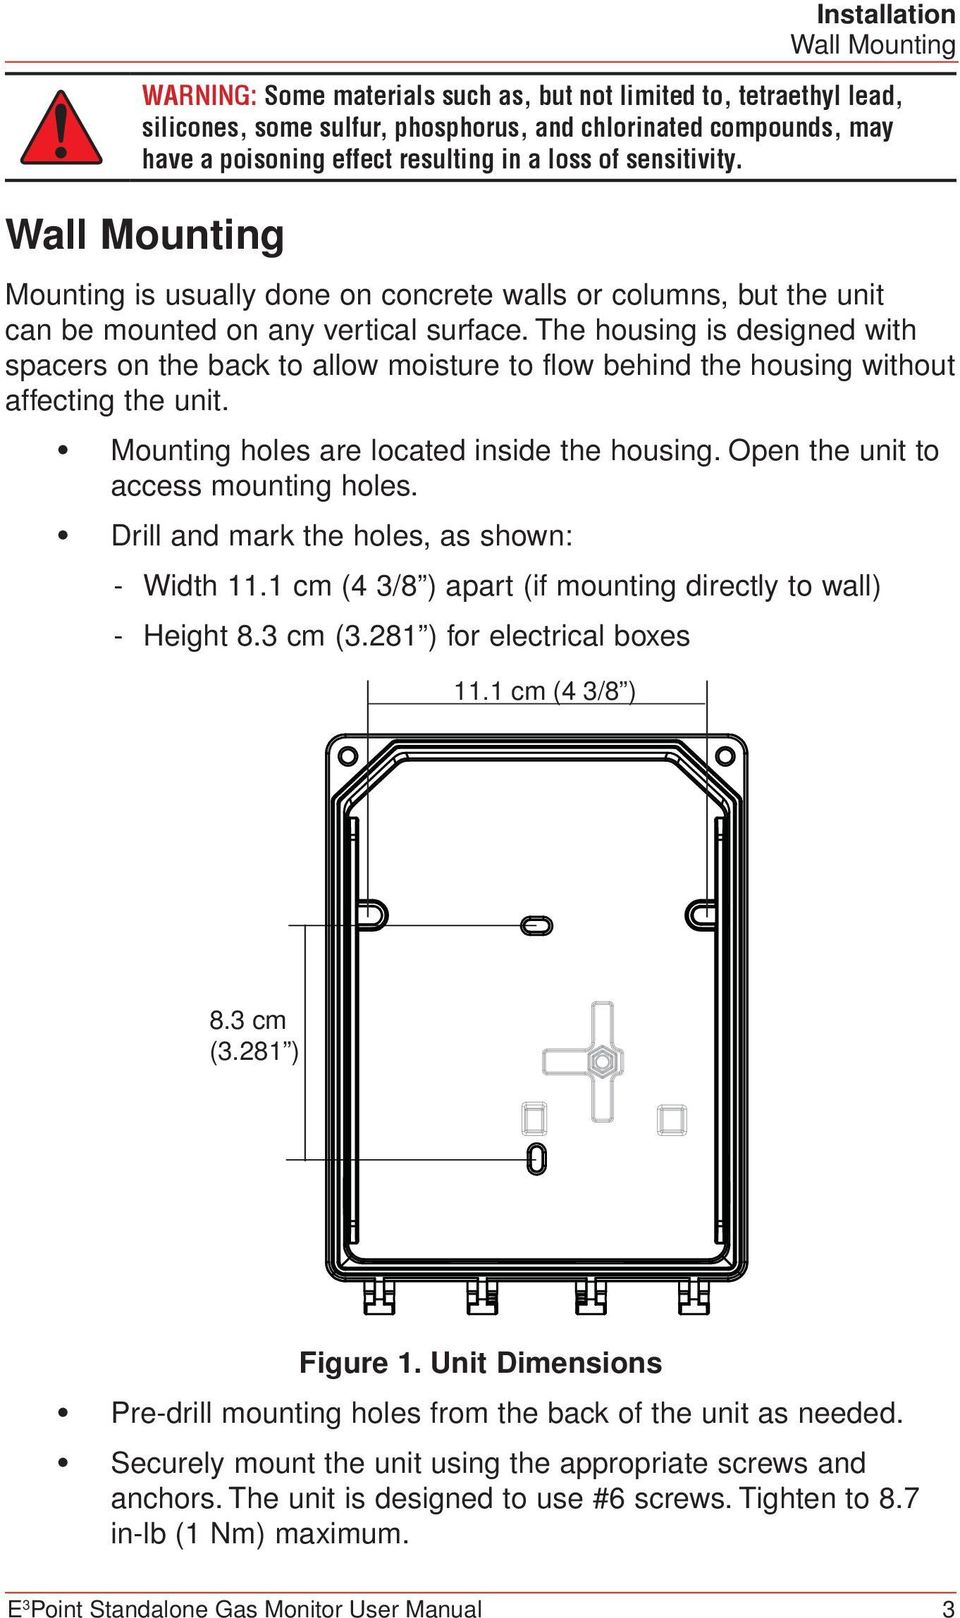 The housing is designed with spacers on the back to allow moisture to flow behind the housing without affecting the unit. Mounting holes are located inside the housing.